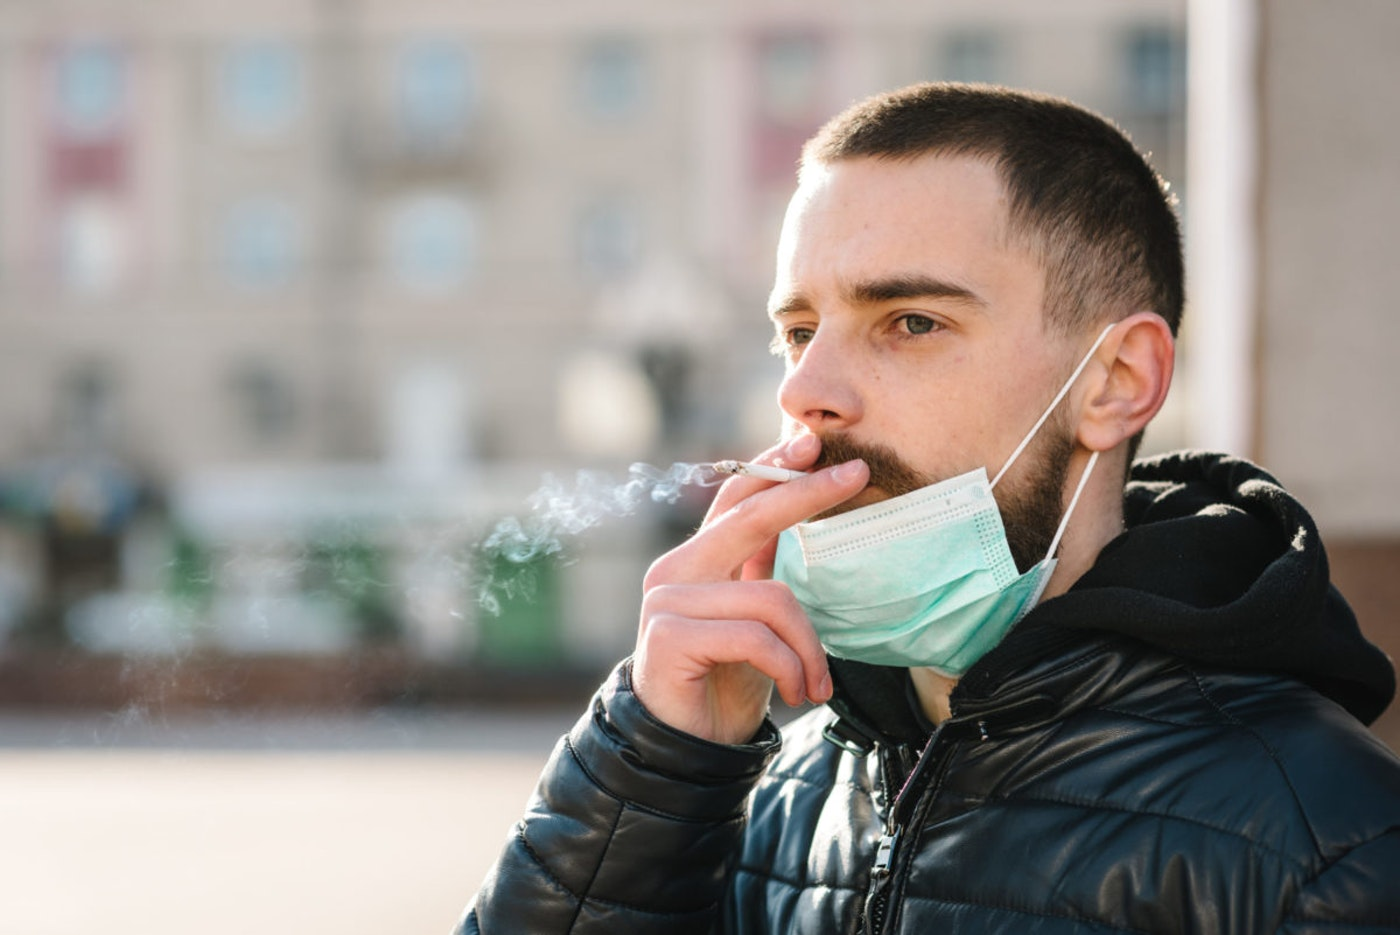 An unidentified man smokes a cigarette during the coronavirus pandemic. (Shutterstock Photo/Sergii Sobolevskyi)